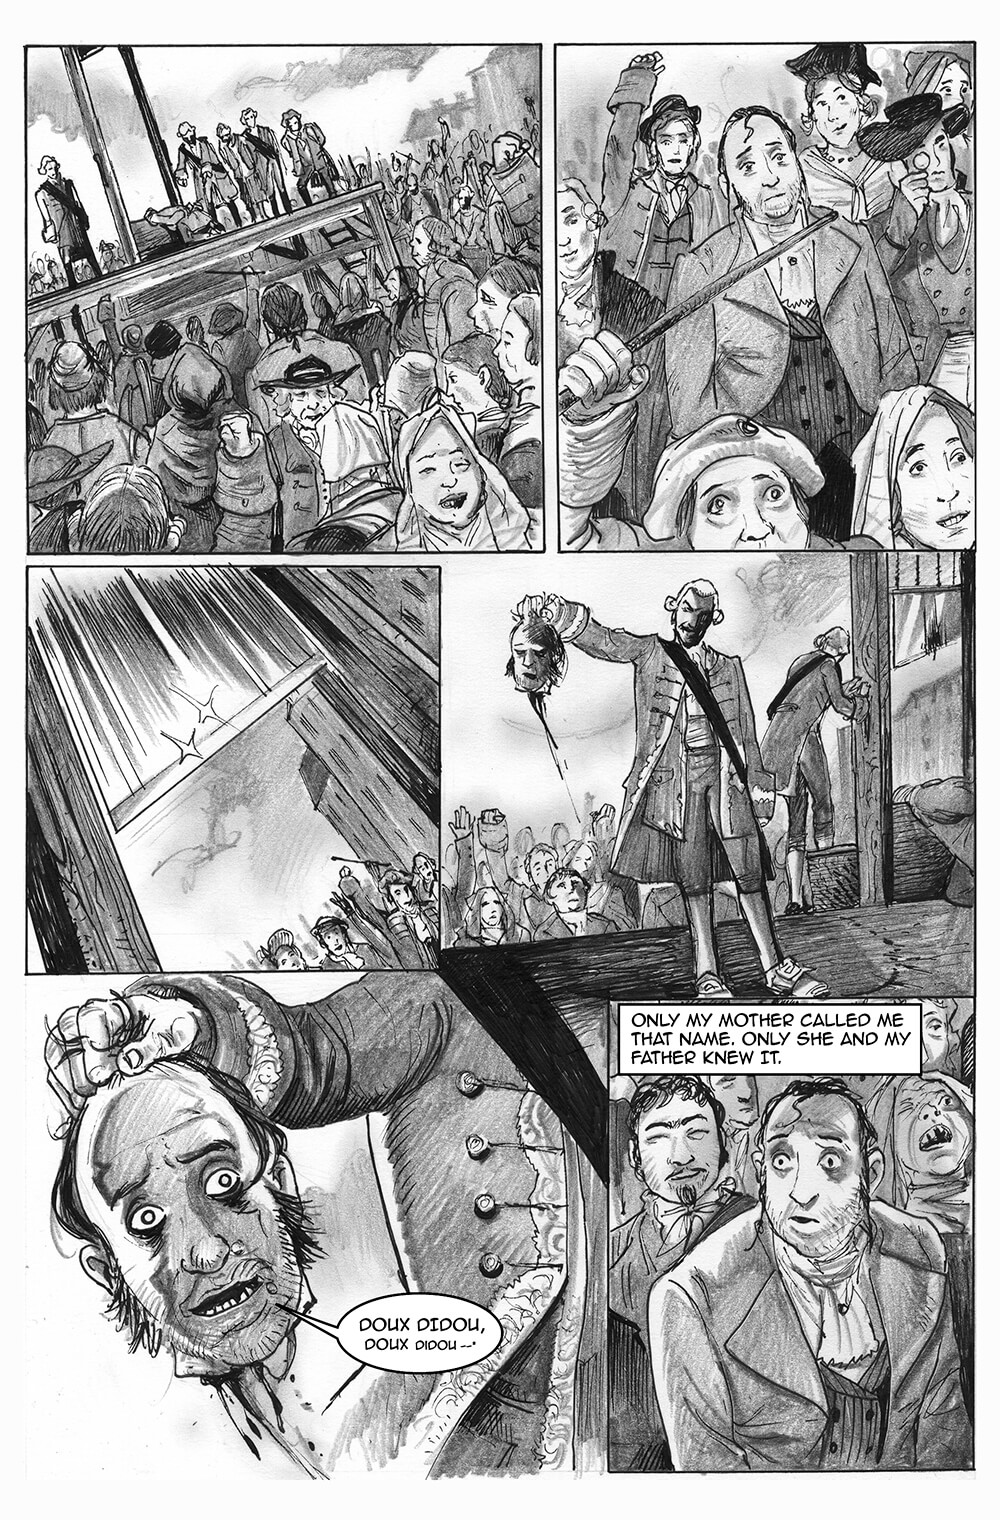 Doux Didou, page 5, by Sam Costello and David Hitchcock